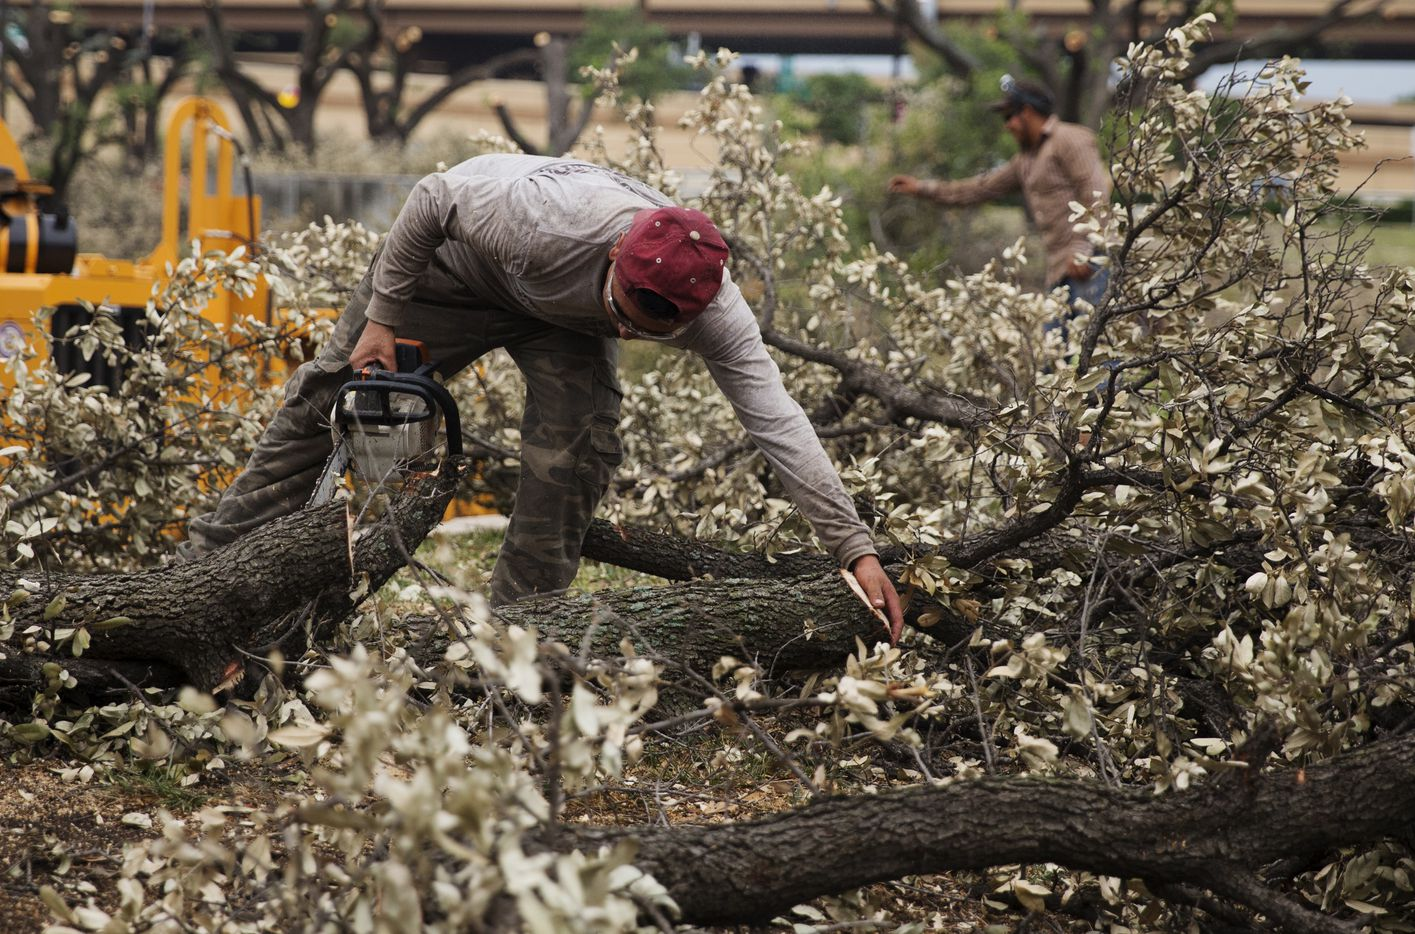 Workers remove the oak trees that line Forest Lane on Friday June 2, 2017. (Tailyr Irvine/The Dallas Morning News)